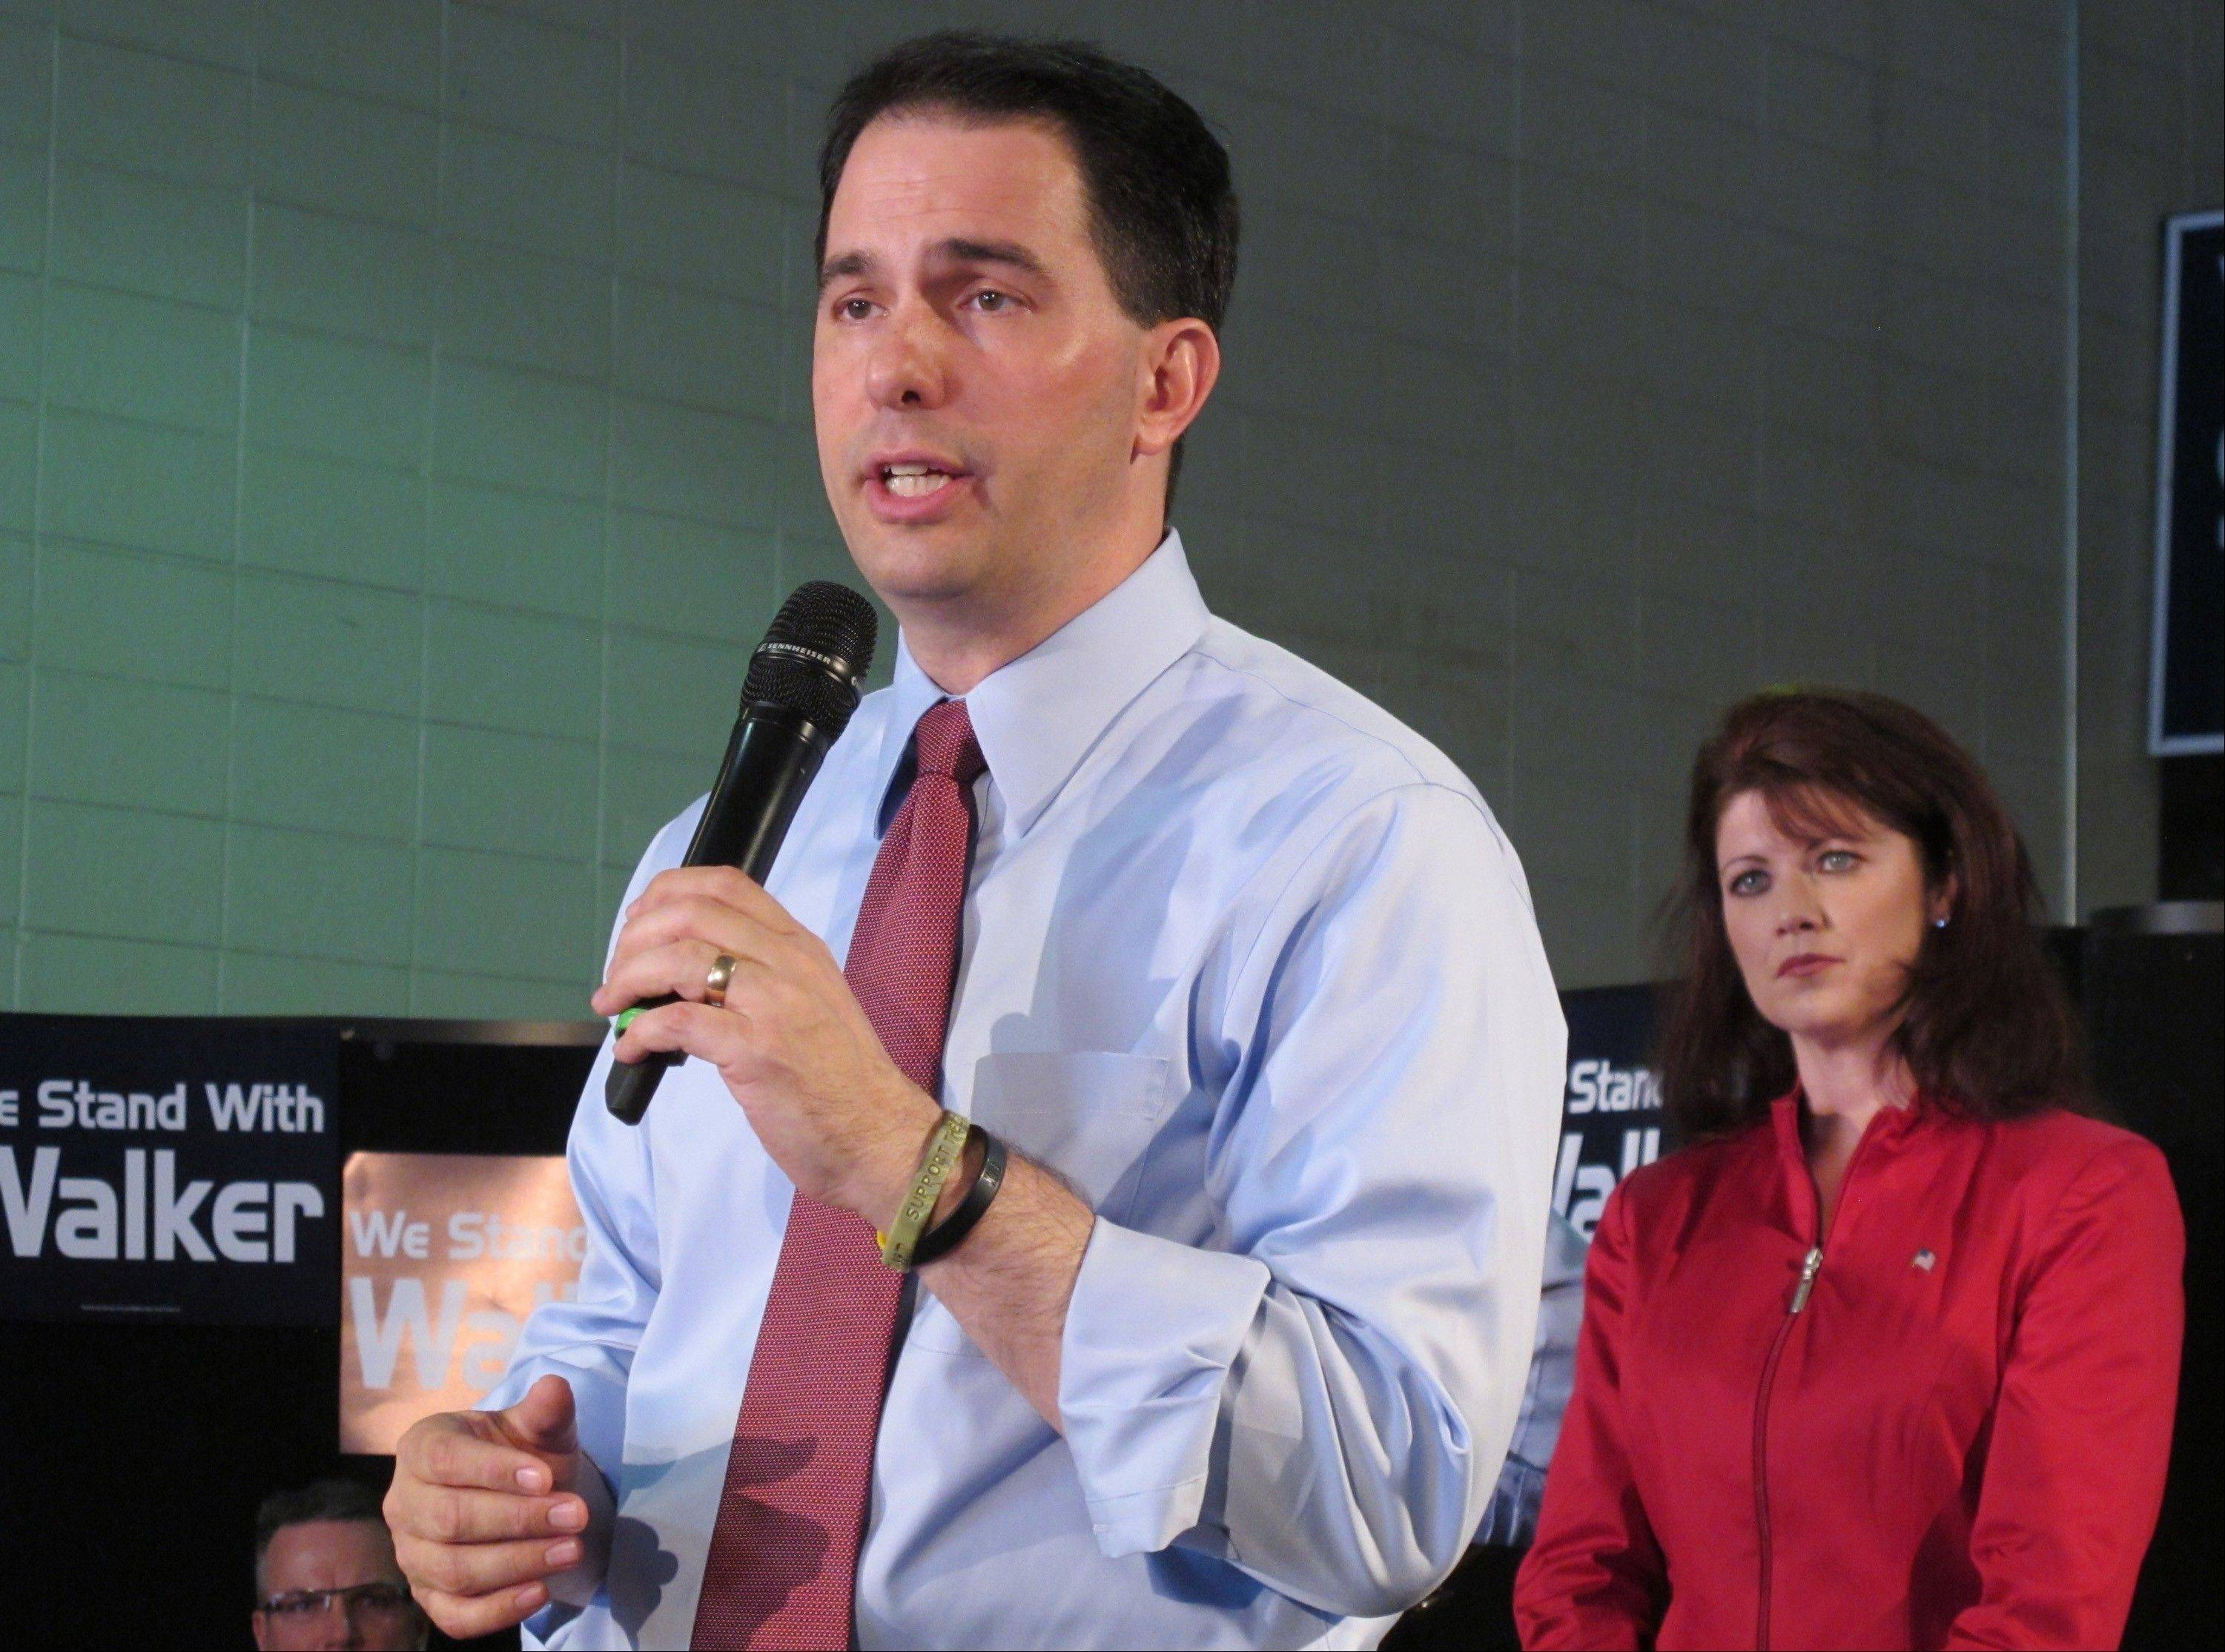 Editorial: Unlike Wisconsin, let's choose to work together